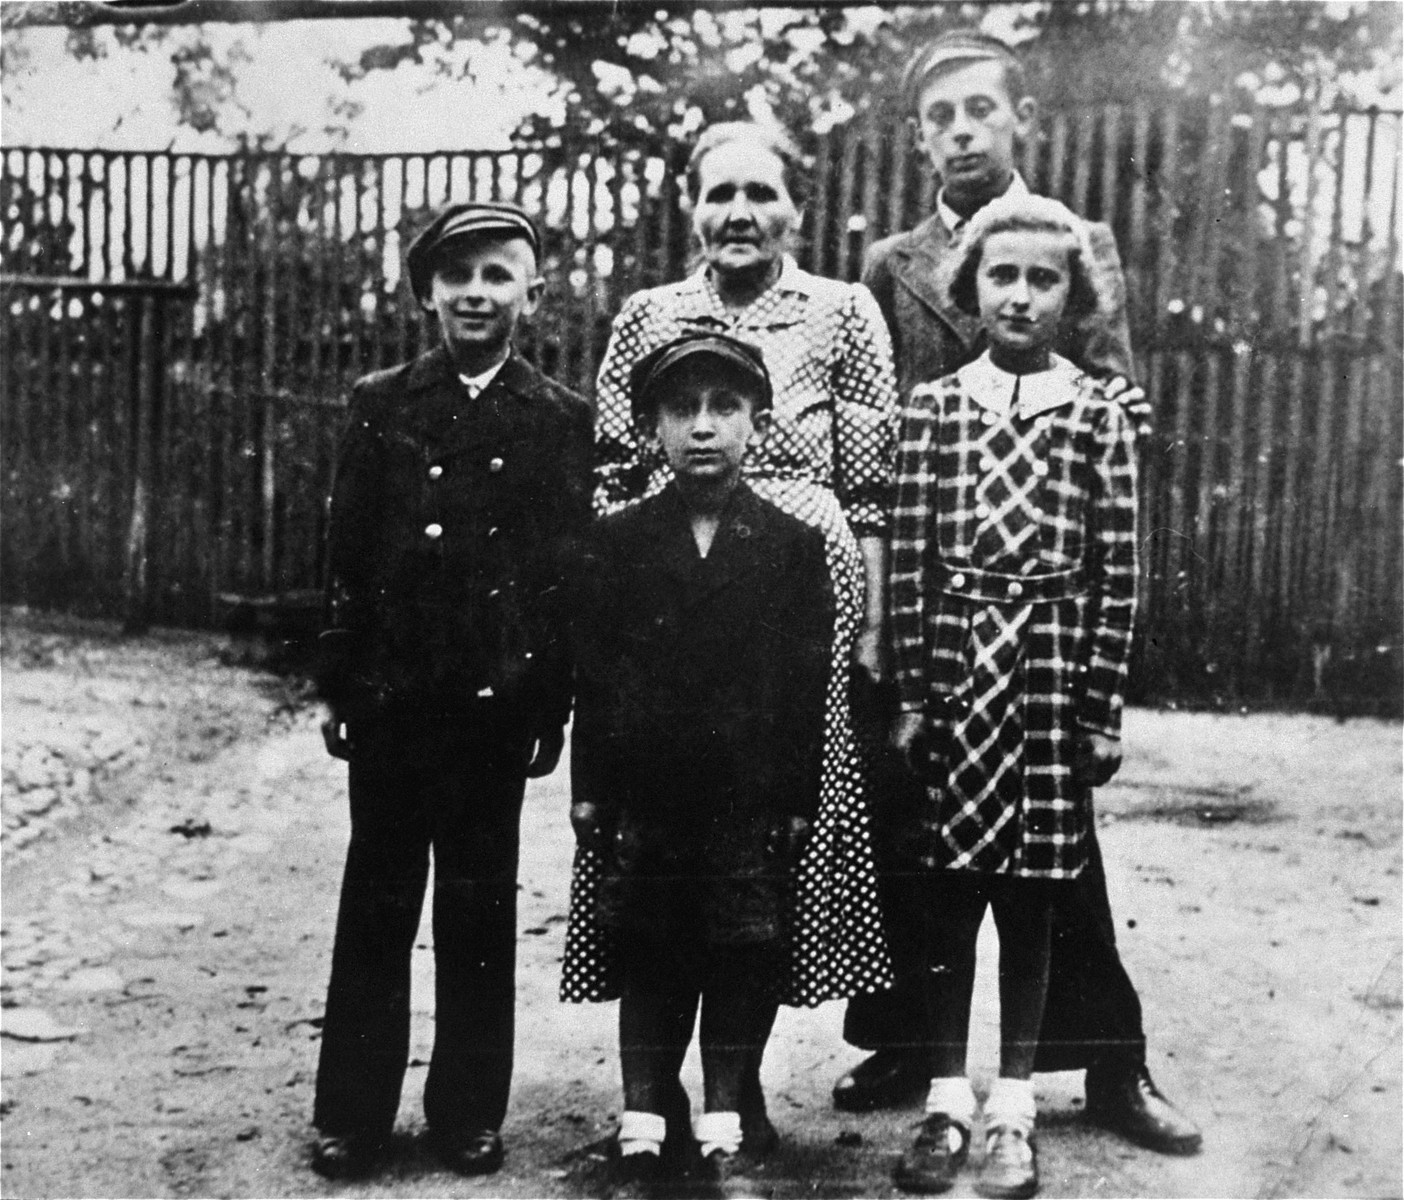 Pictured here is Cesia Carol Uncyk, her three brothers, and their Polish nanny.